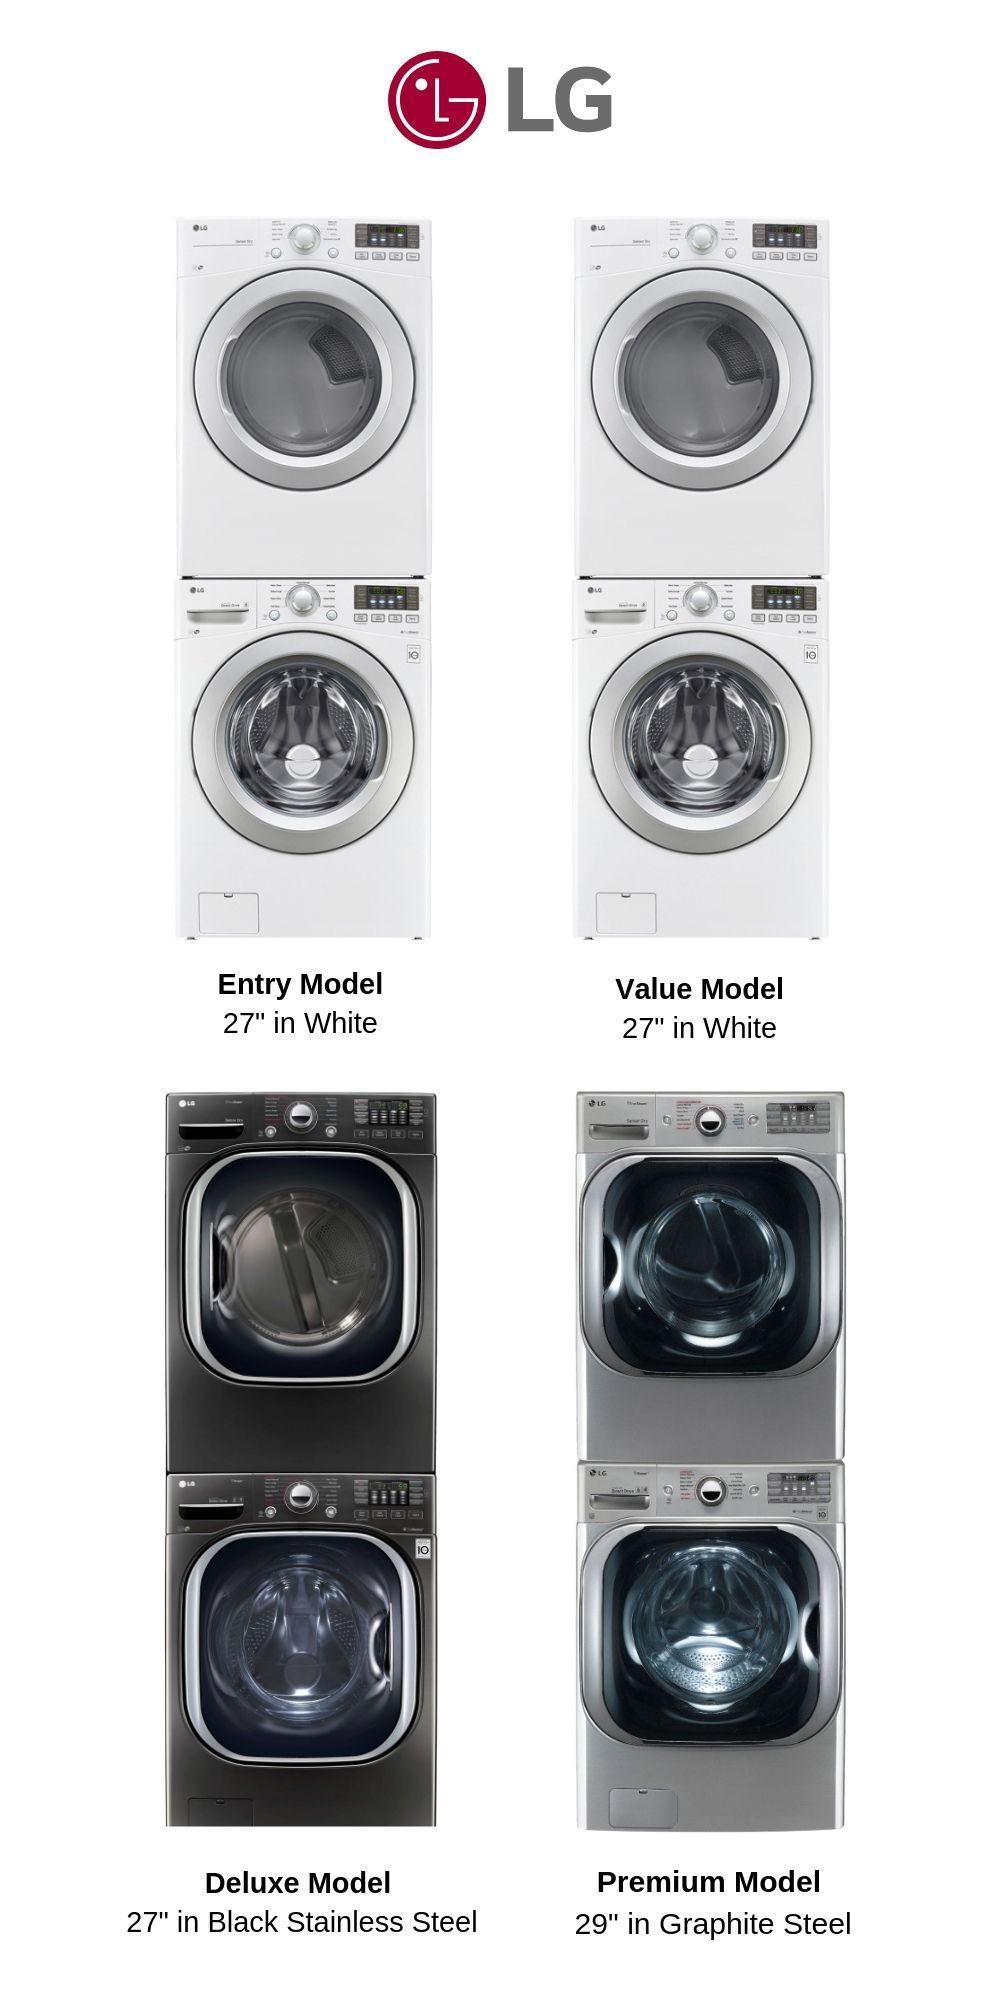 Best Lg Stackable Washer And Dryer For 2019 Review Lg Washer And Dryer Washer Dryer Laundry Room Best Washer Dryer